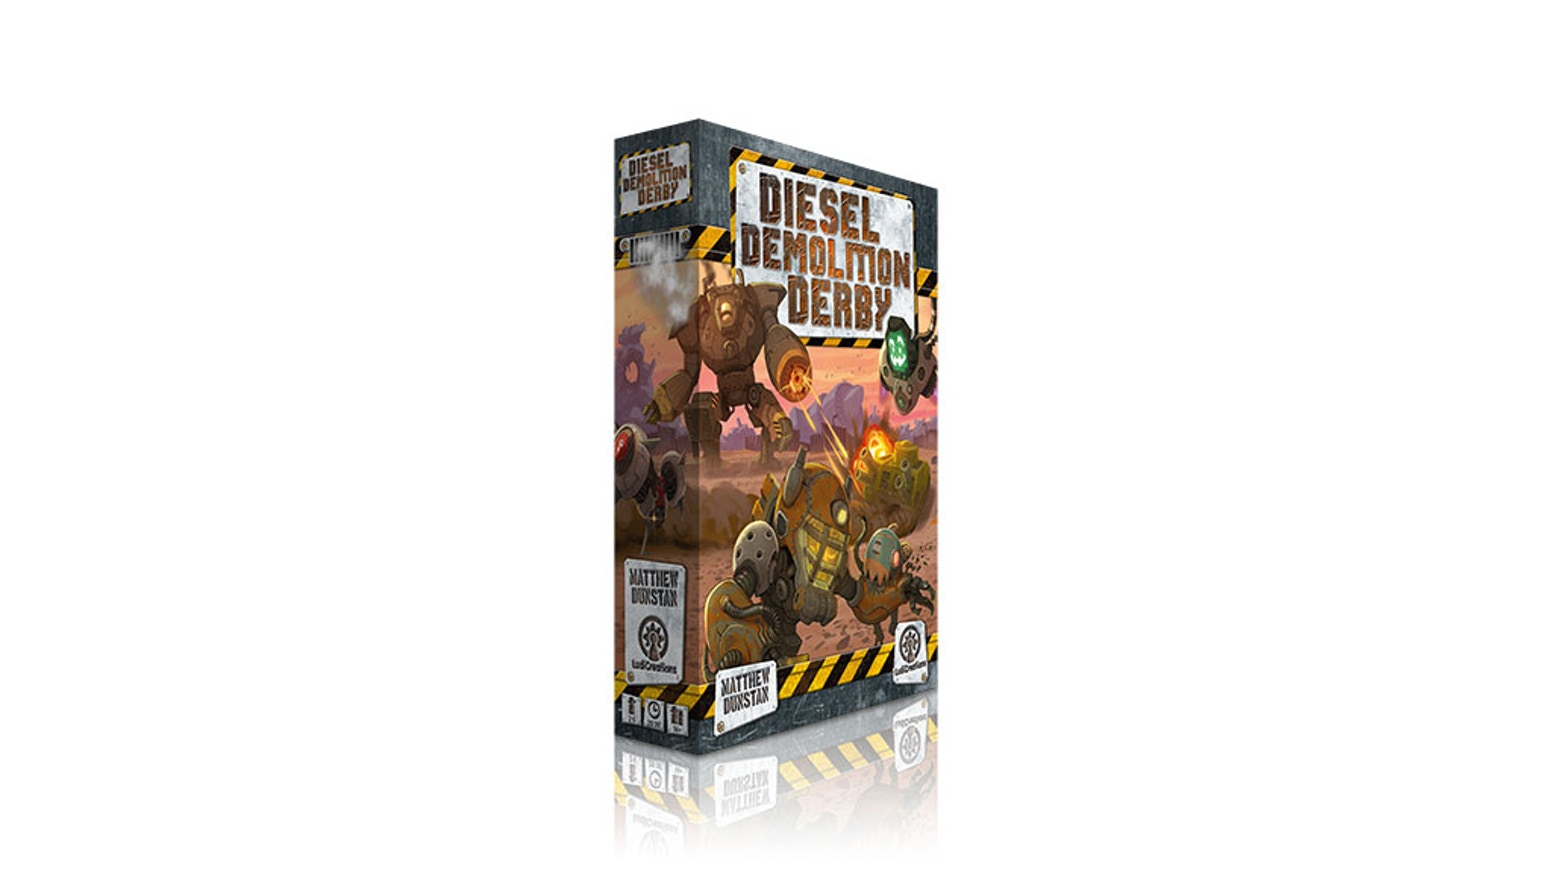 A tactical drafting card game for 2-6 players. An underground fighting league for dieselpunk mechas in a society in Crisis.